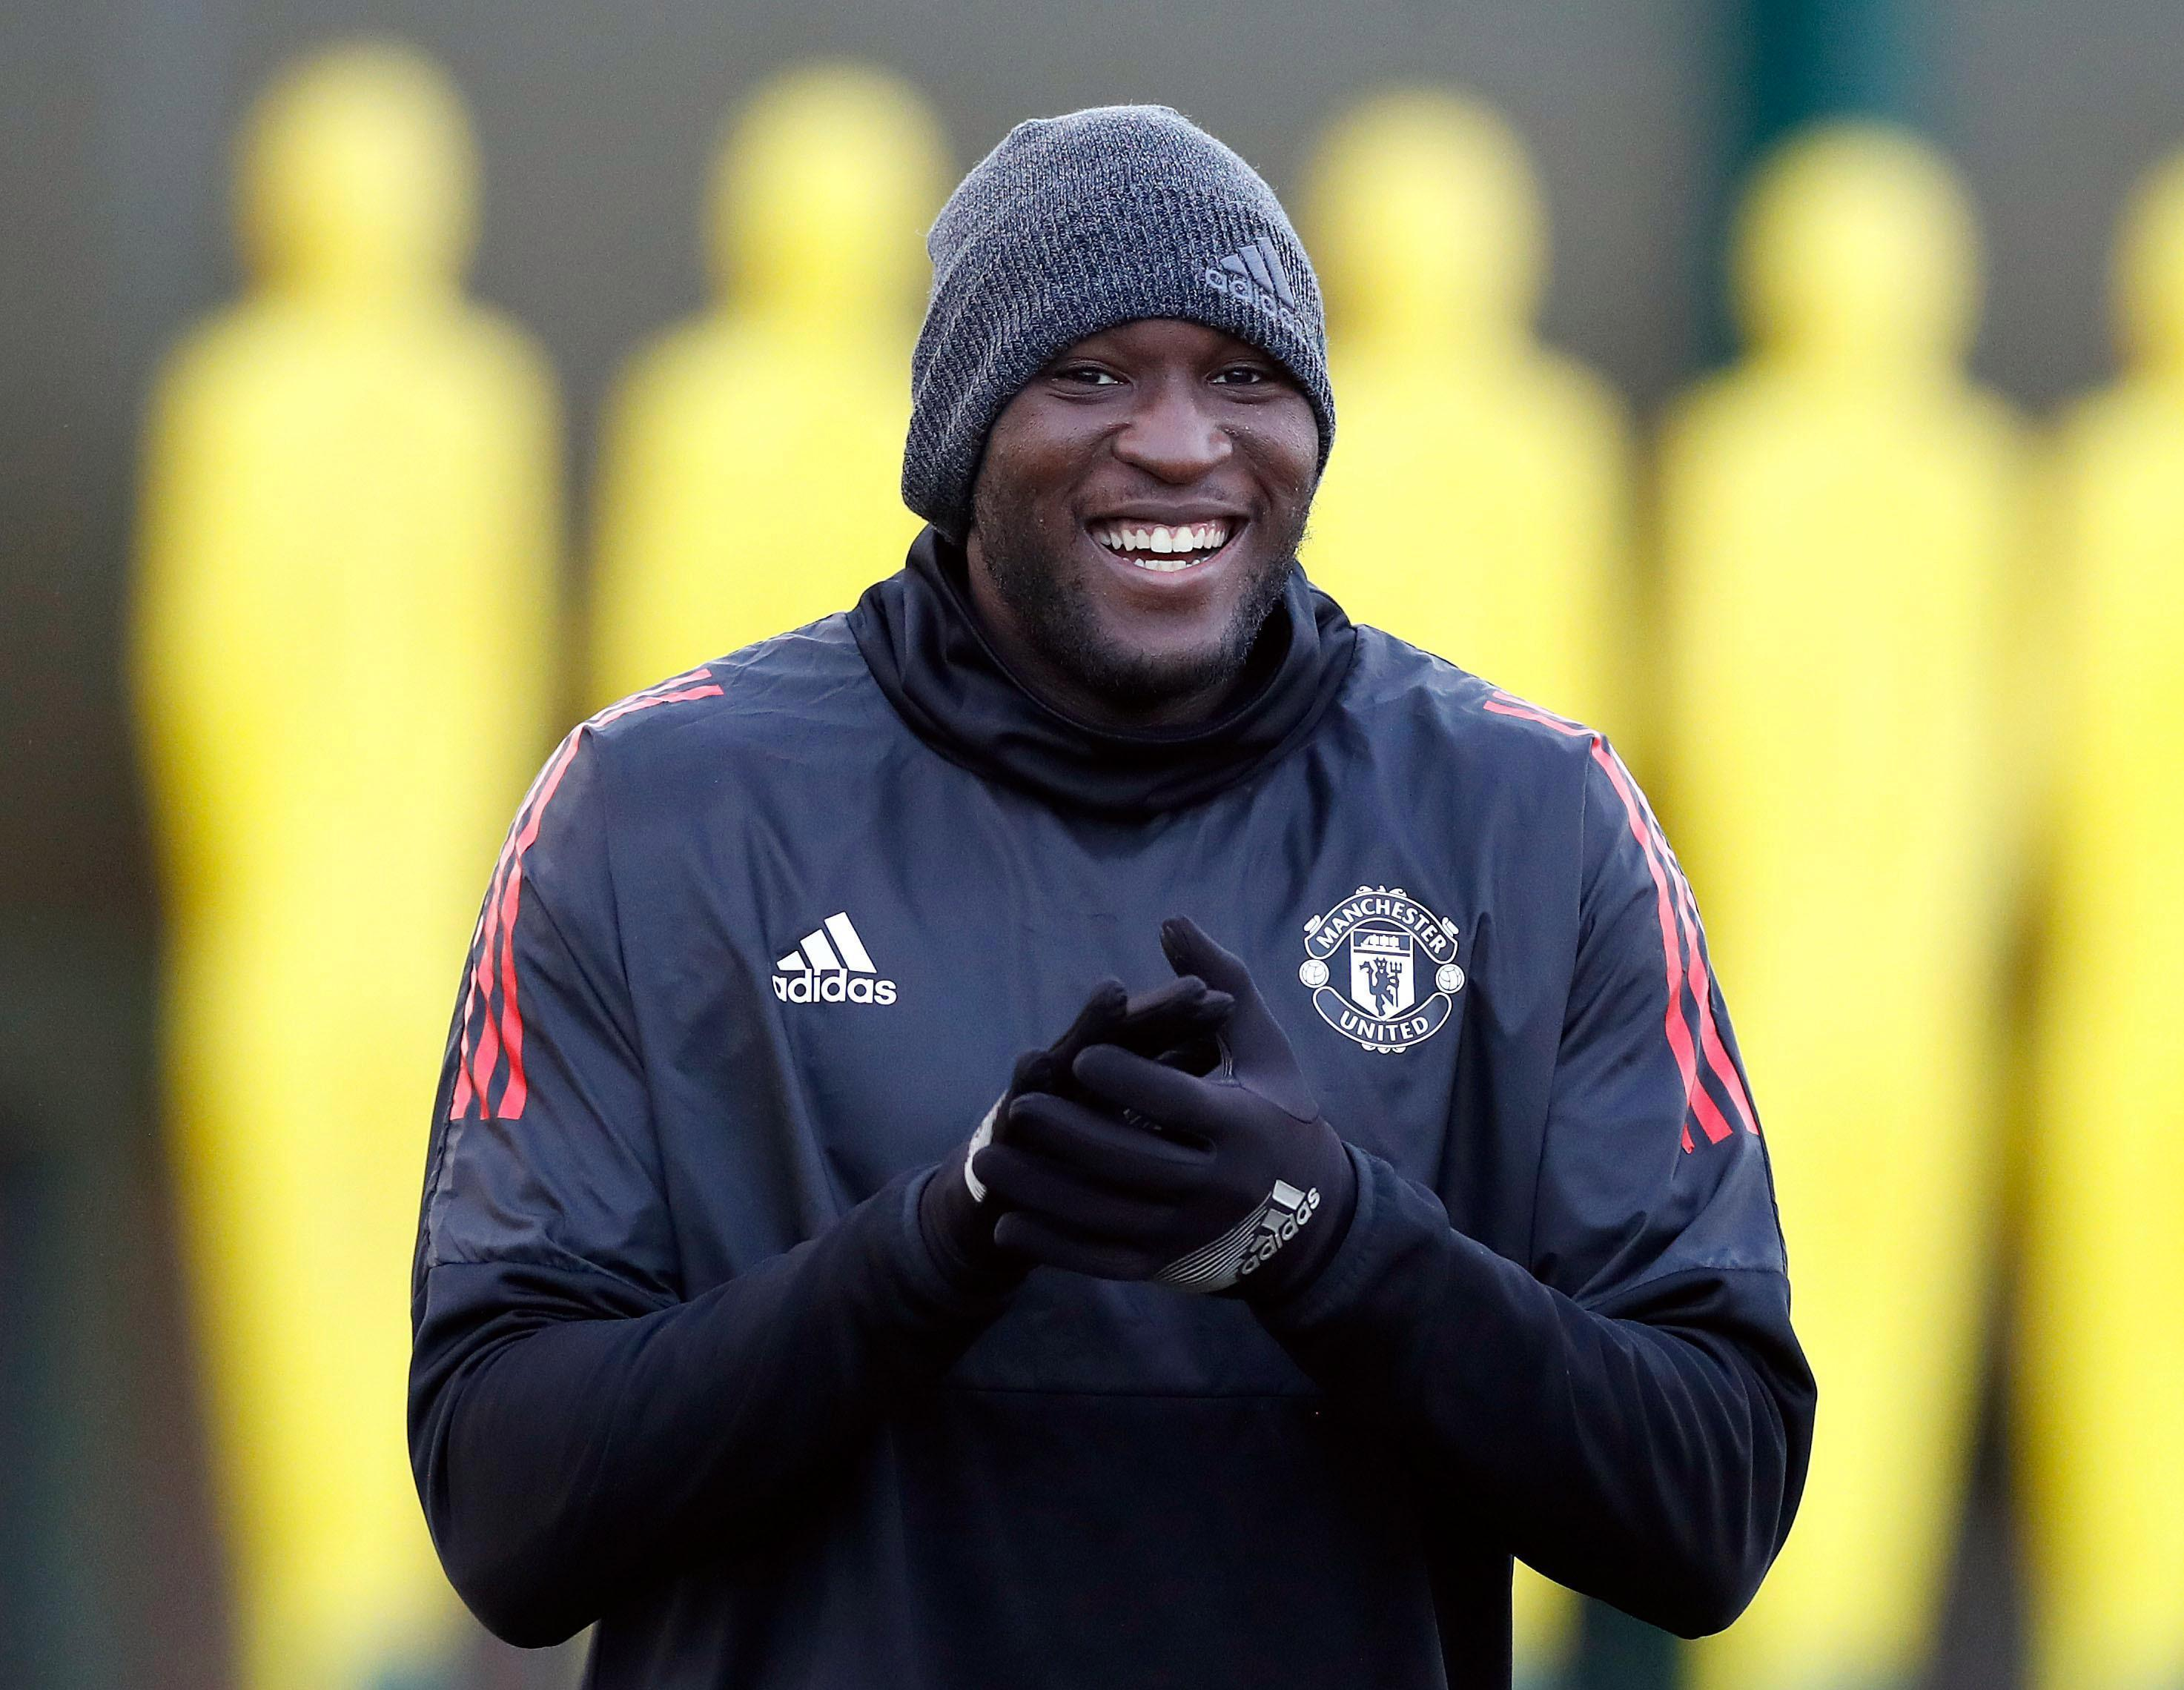 Romelu Lukaku has found his form again after a bust-up with Jose Mourinho